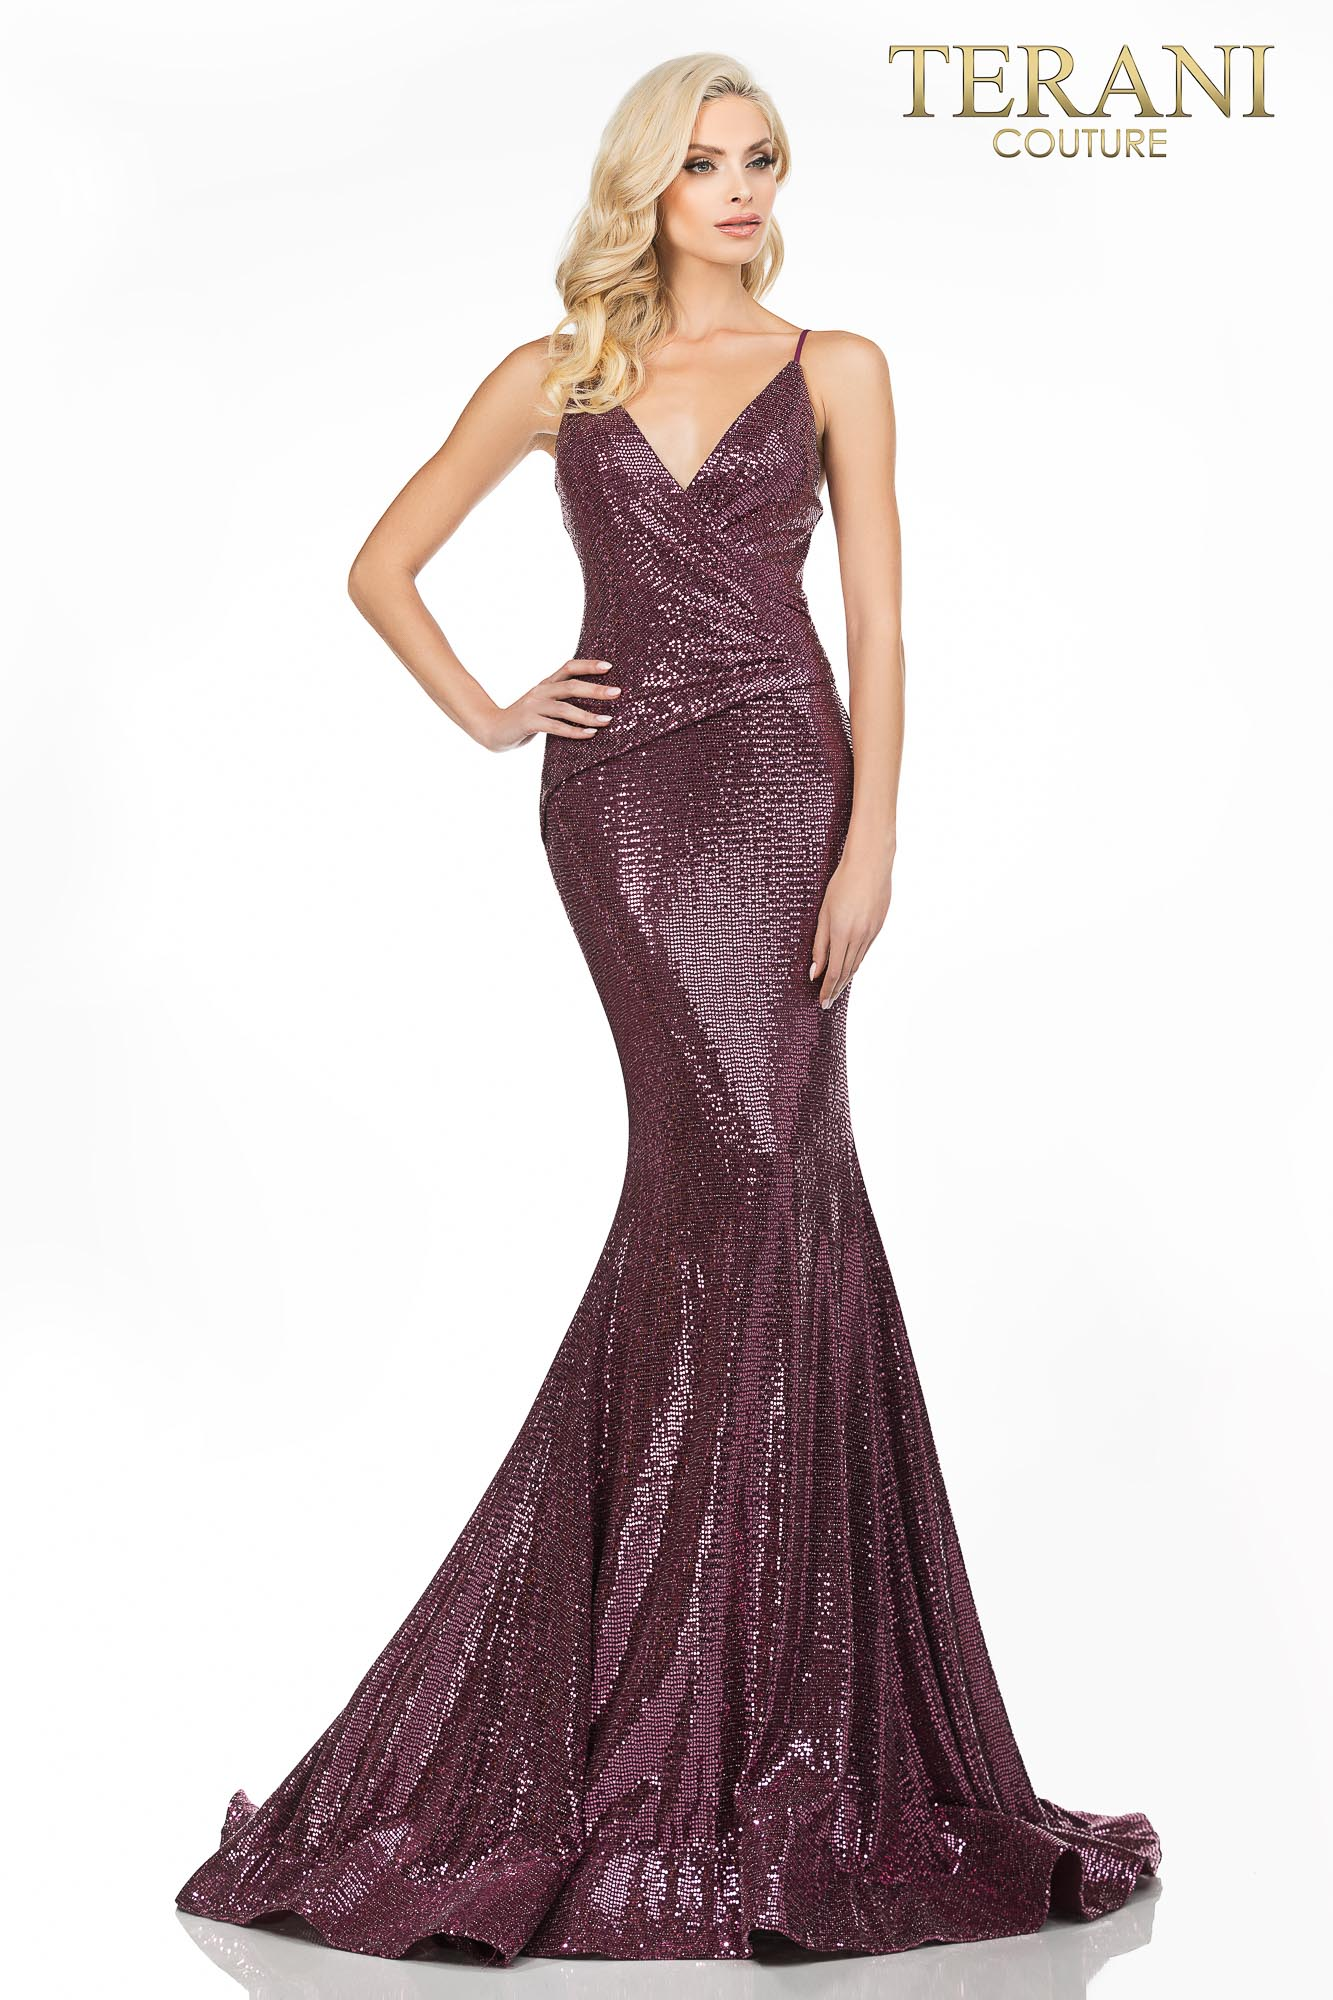 Wine Spaghetti strap metallic fitted prom dress – Style number 2011P1032